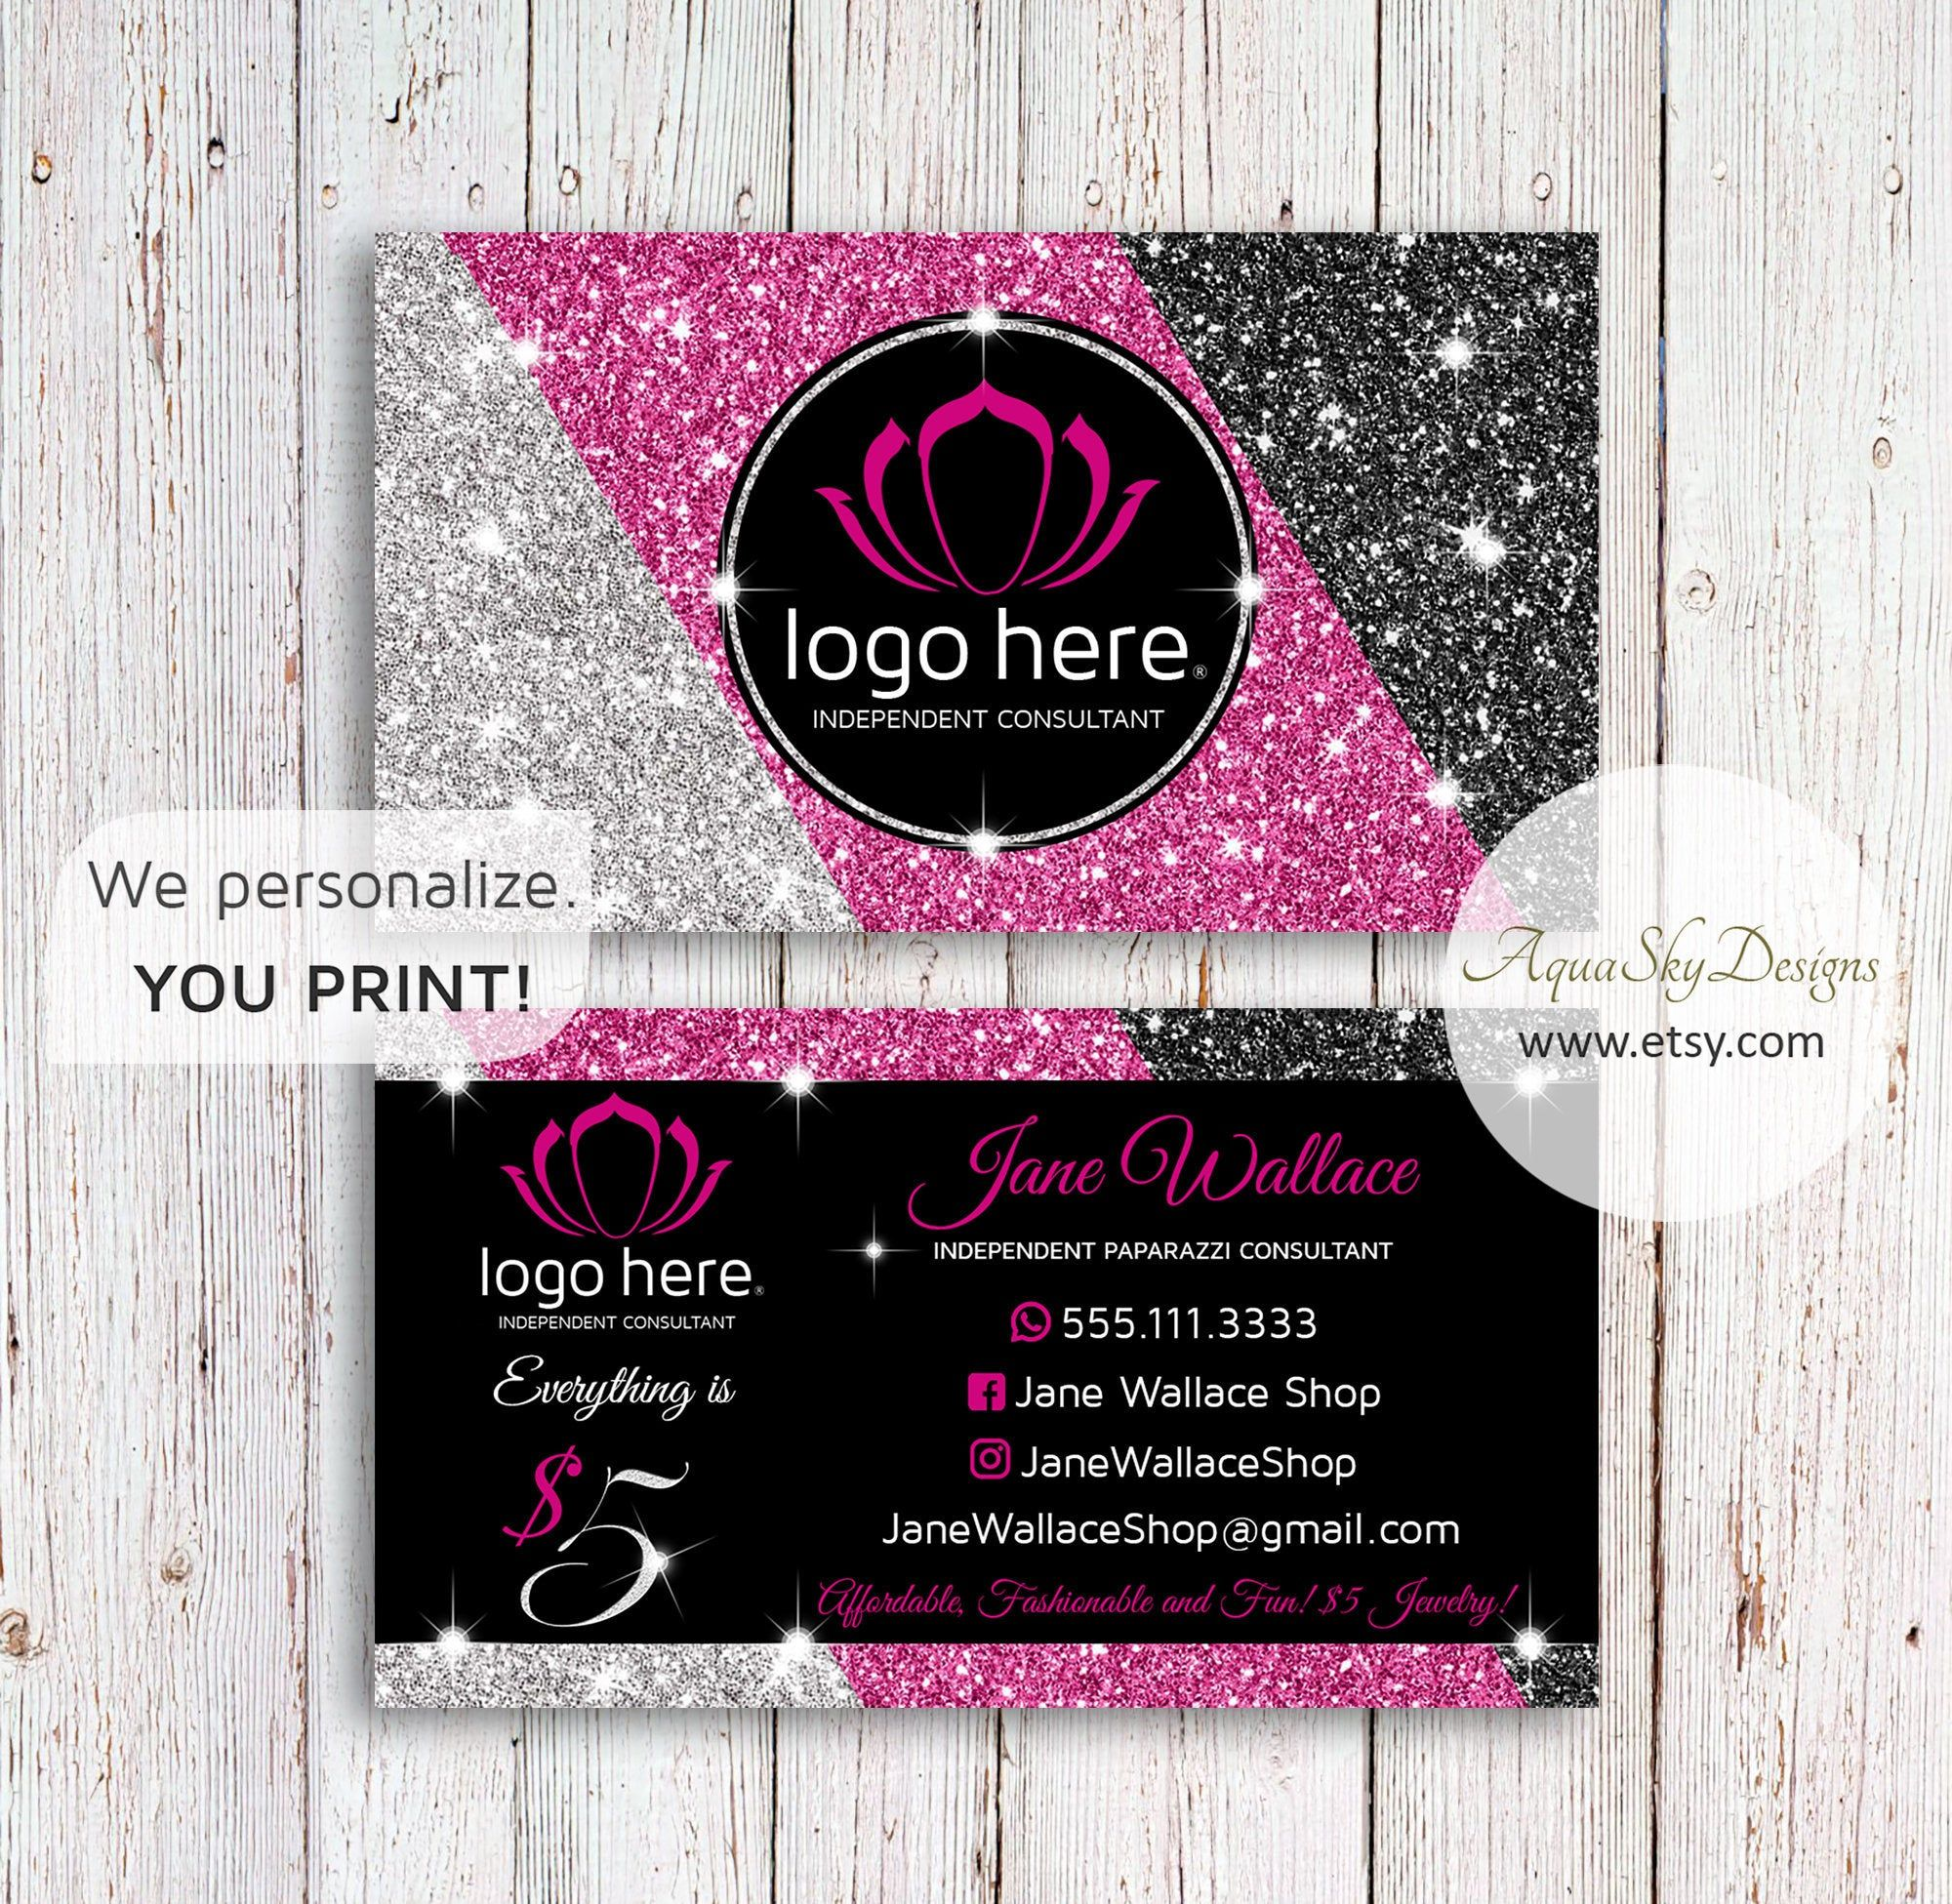 Paparazzibusinesscards Pink Paparazzi Business Card Template Paparazzi Accessories P Jewelry Business Card Pink Business Card Business Card Design Inspiration